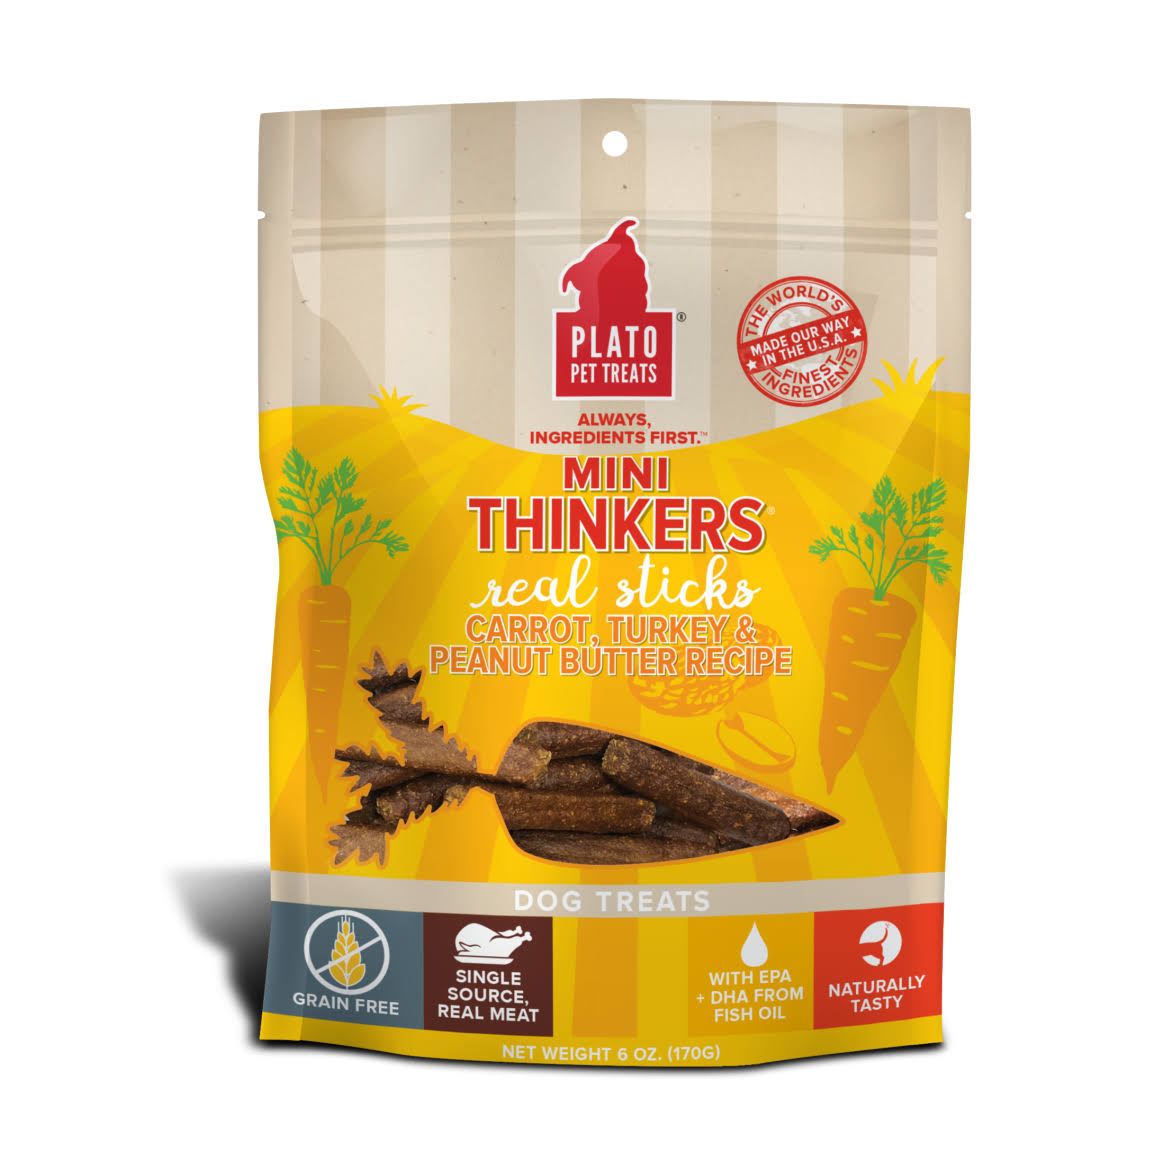 Plato Mini Thinkers Carrot, Turkey & Peanut Butter Recipe Dog Treats, 6oz